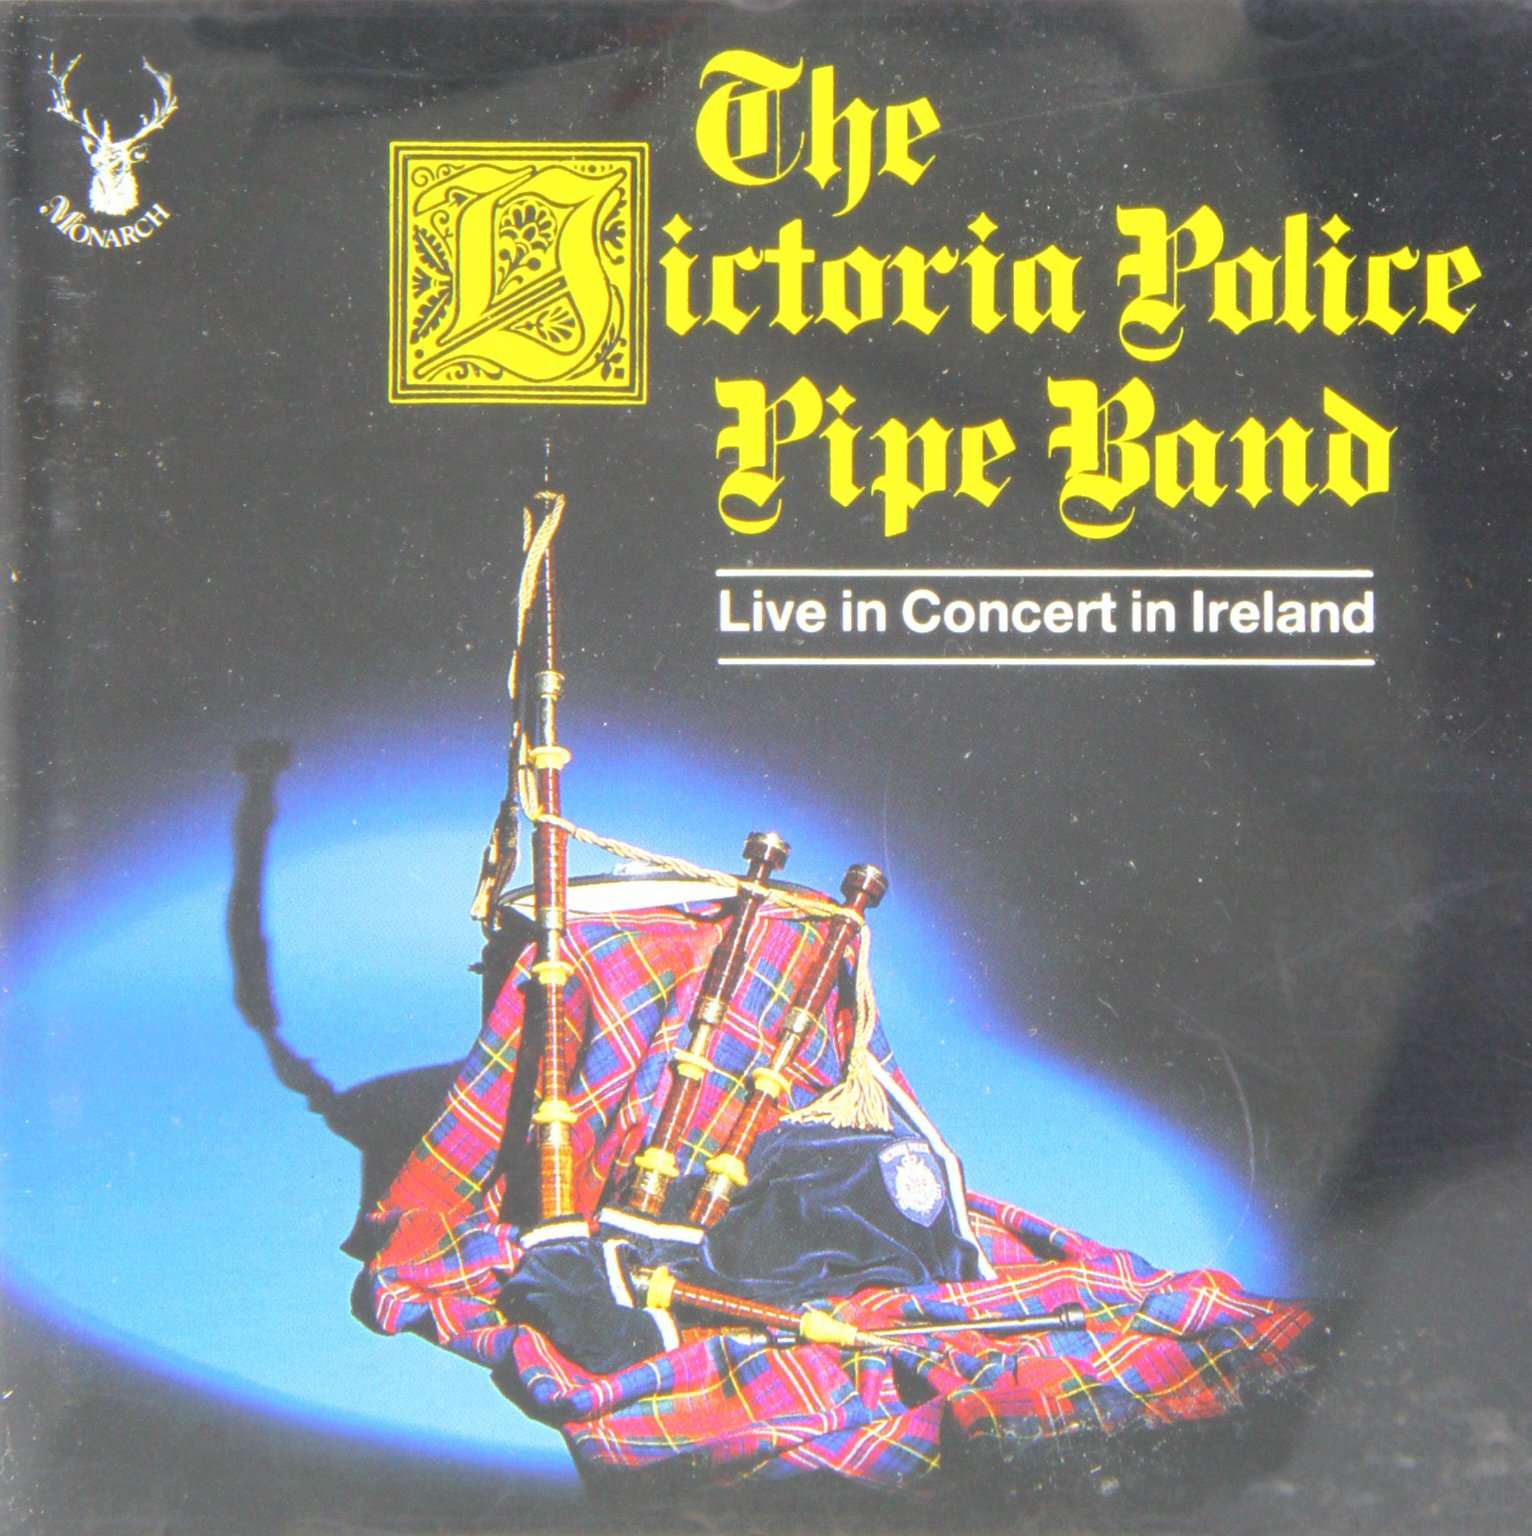 The Victoria Police Pipe Band, Live in Concert in Ireland by KRL/Monarch